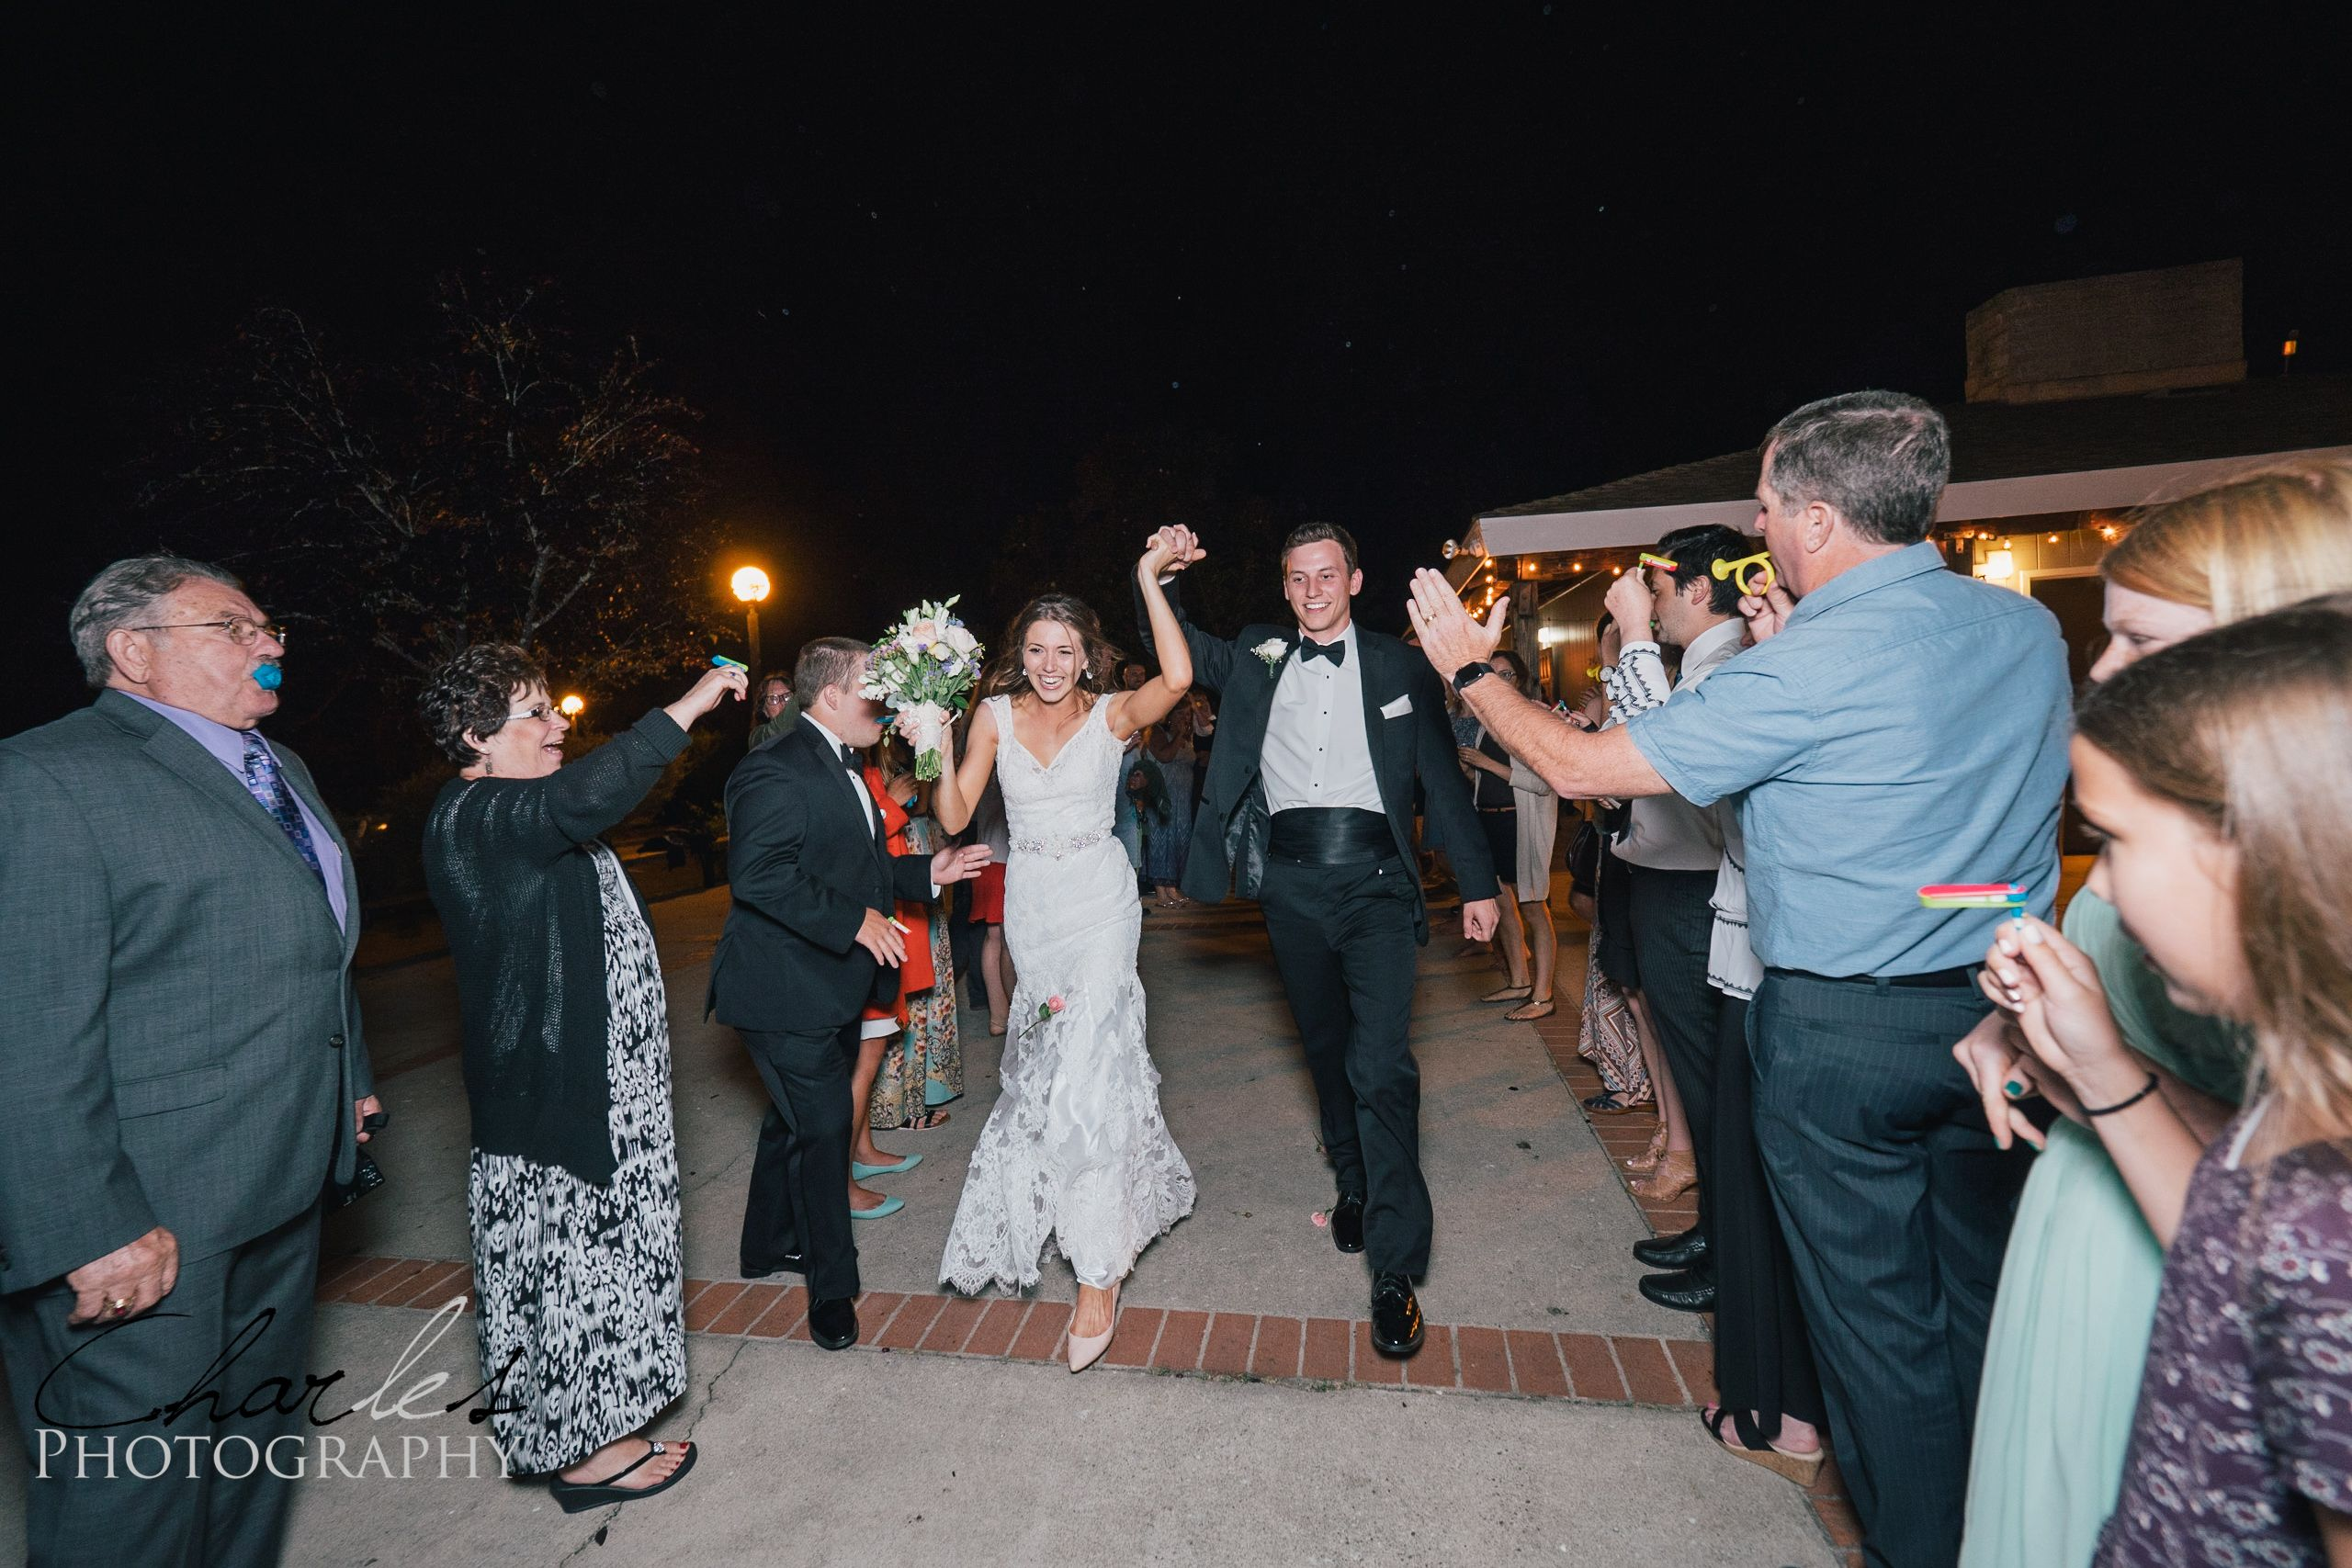 California Wedding Photographed by Charles Le Photography - Reception! Mr. & Mrs. Send off!!